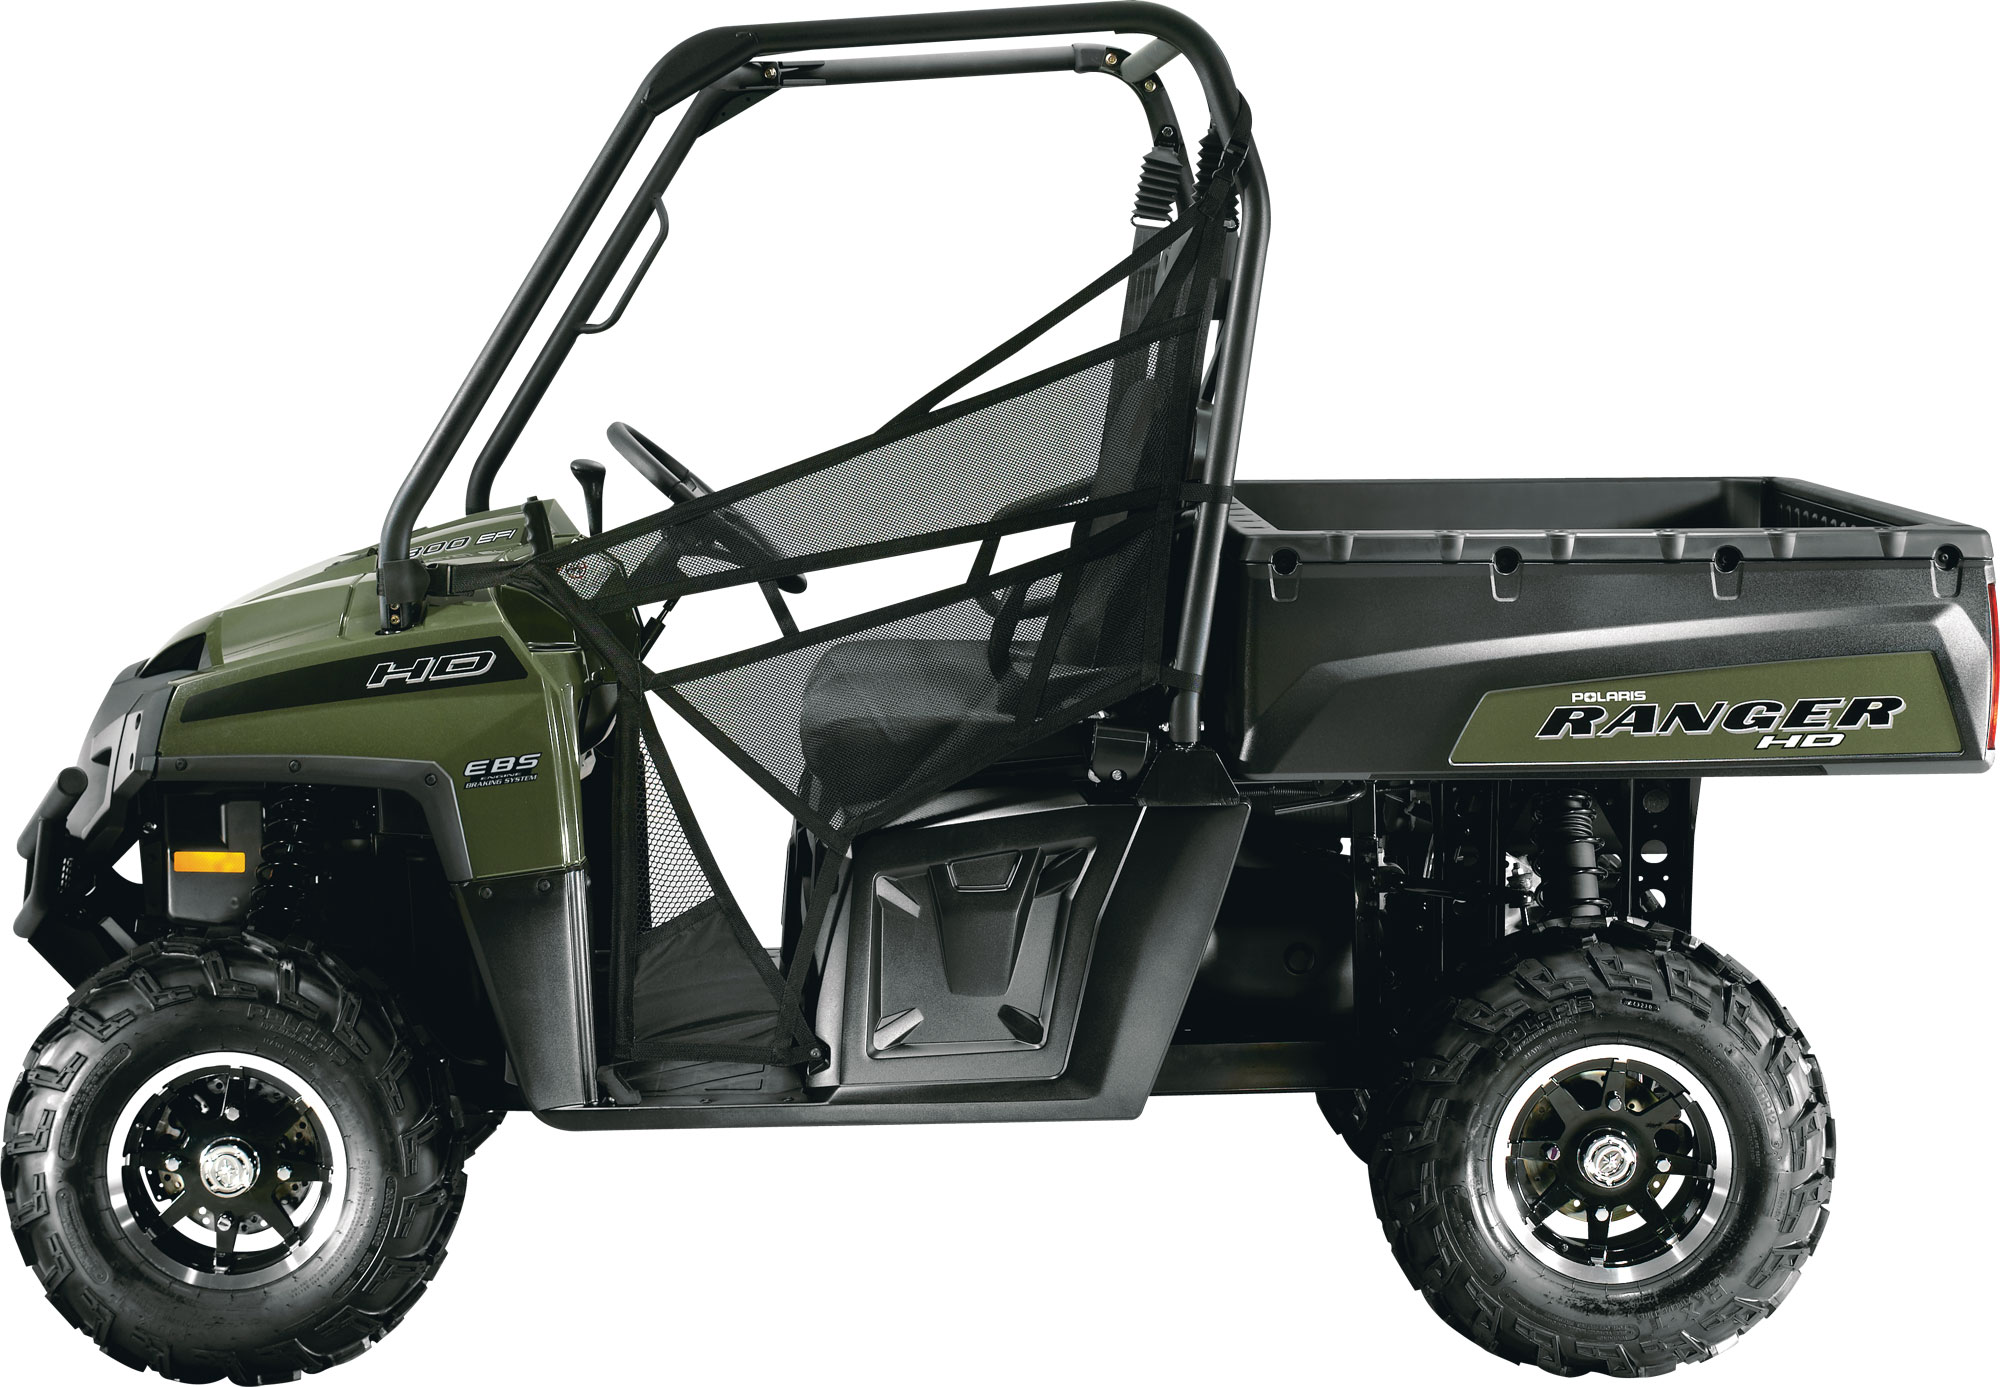 polaris ranger hd 800 2011 2012 autoevolution. Black Bedroom Furniture Sets. Home Design Ideas